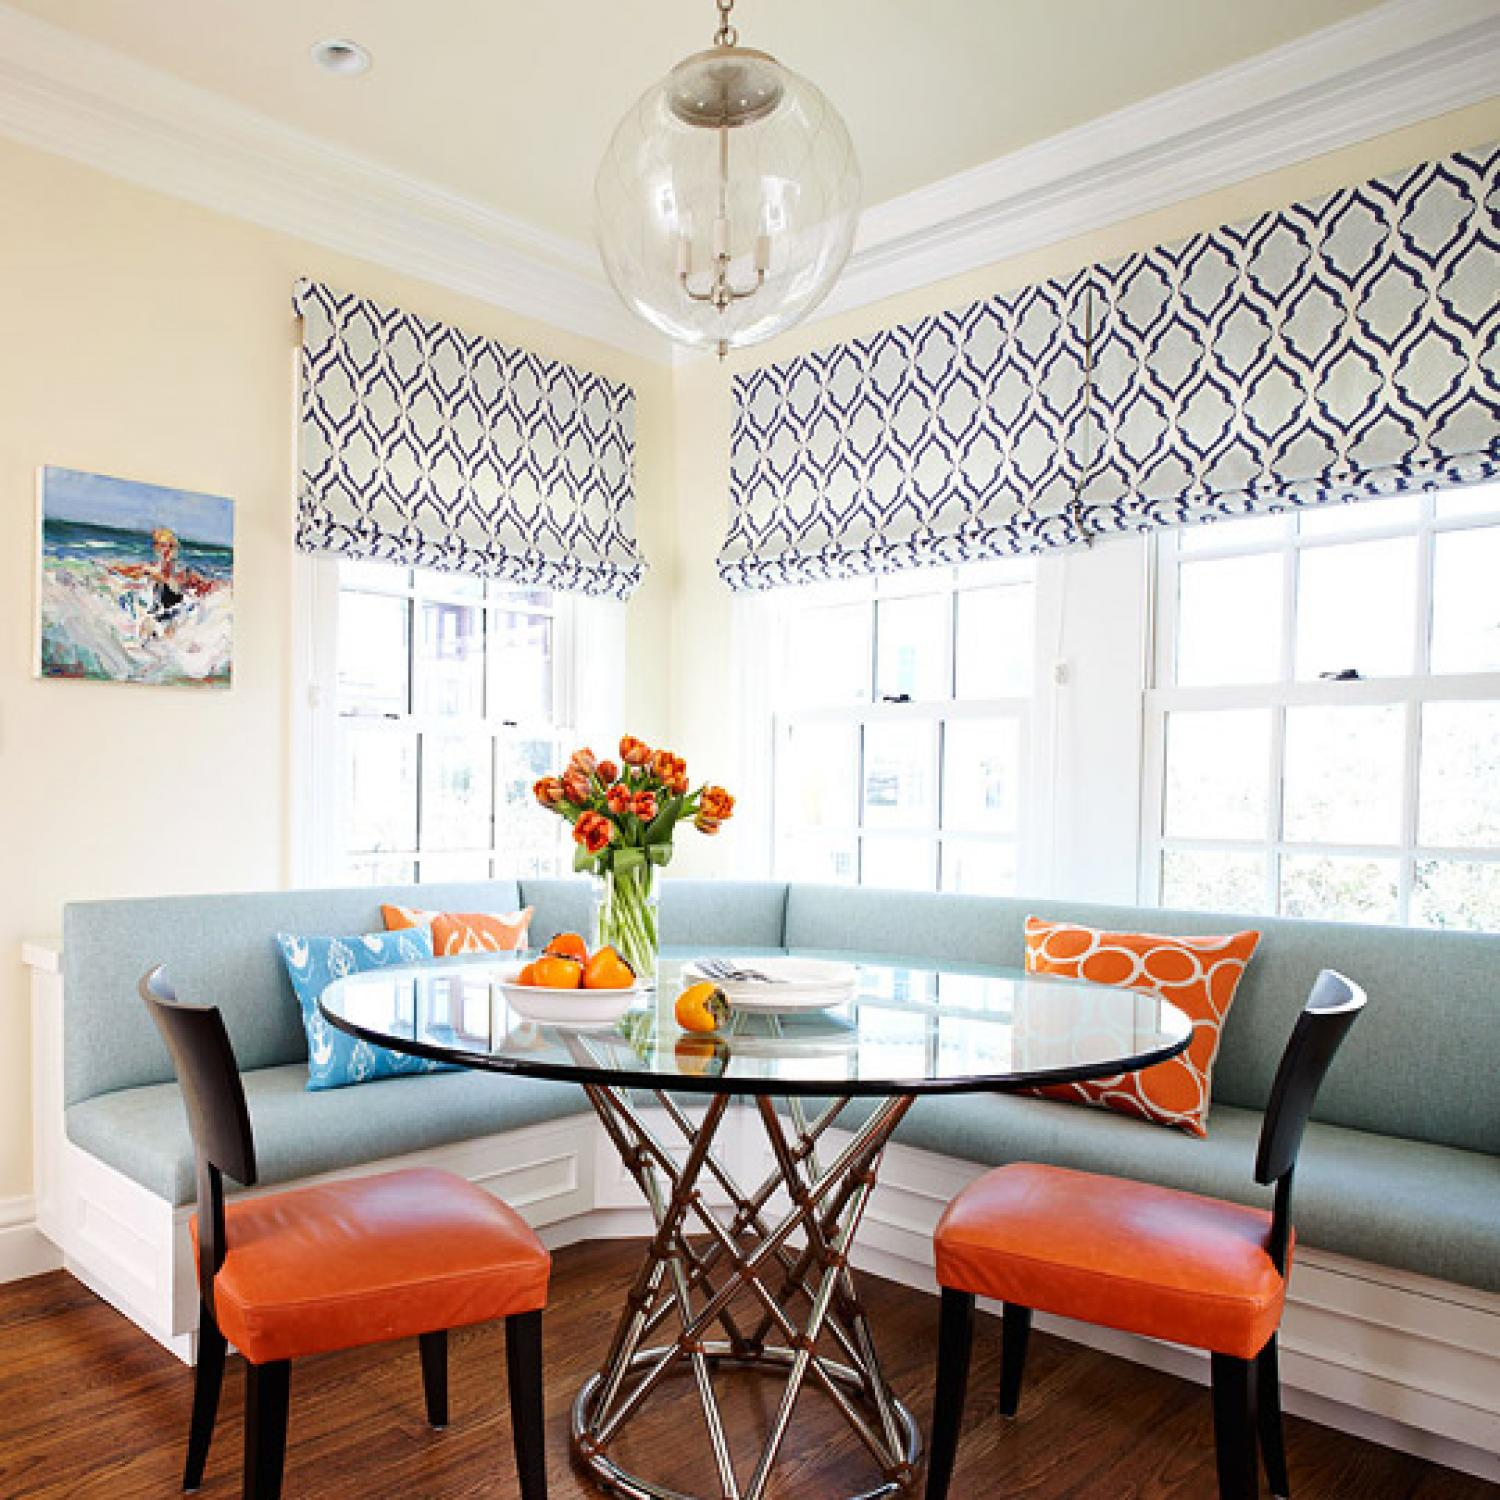 Sunroom Dining Room Creative: Banquette Or Upholstered Settee